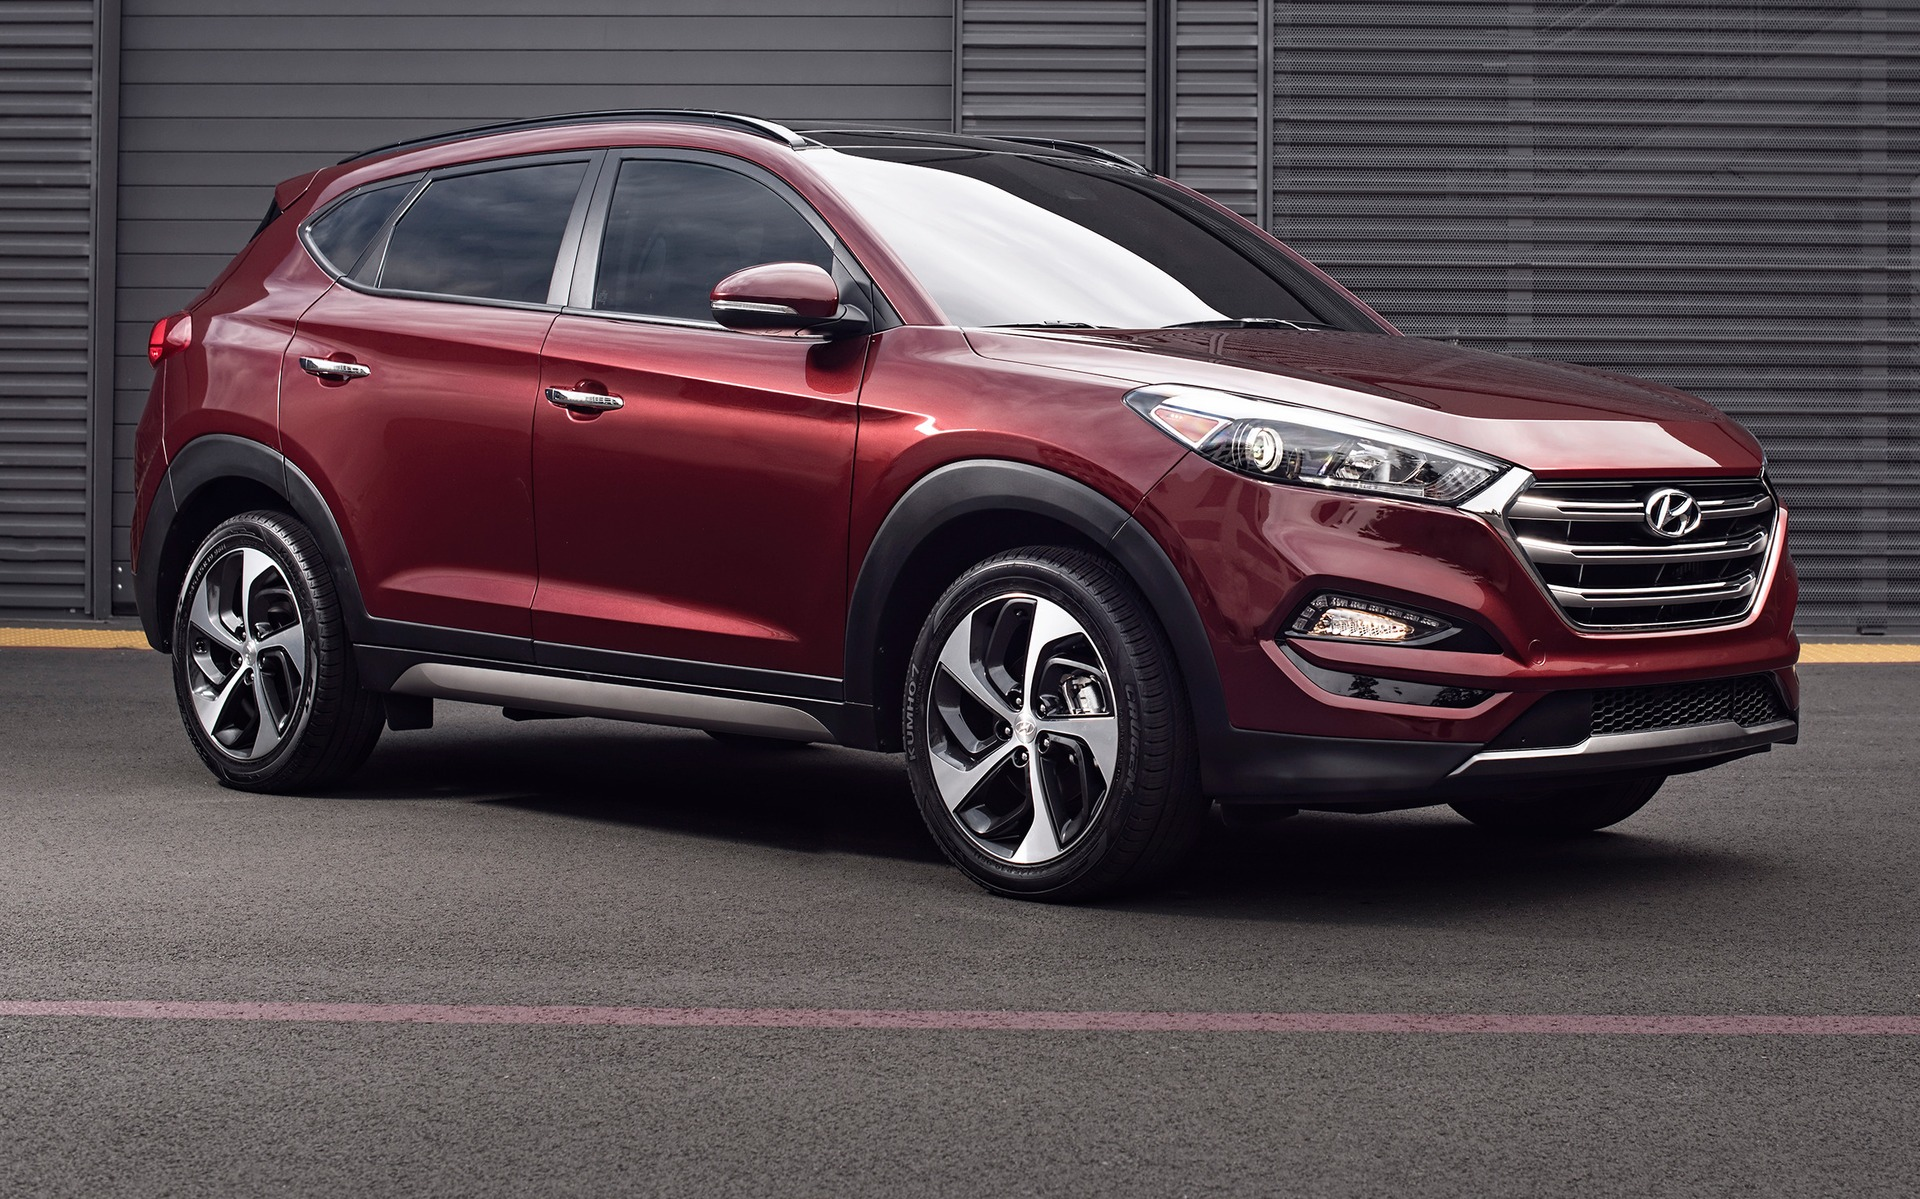 2019 Hyundai Tucson new photo - 3